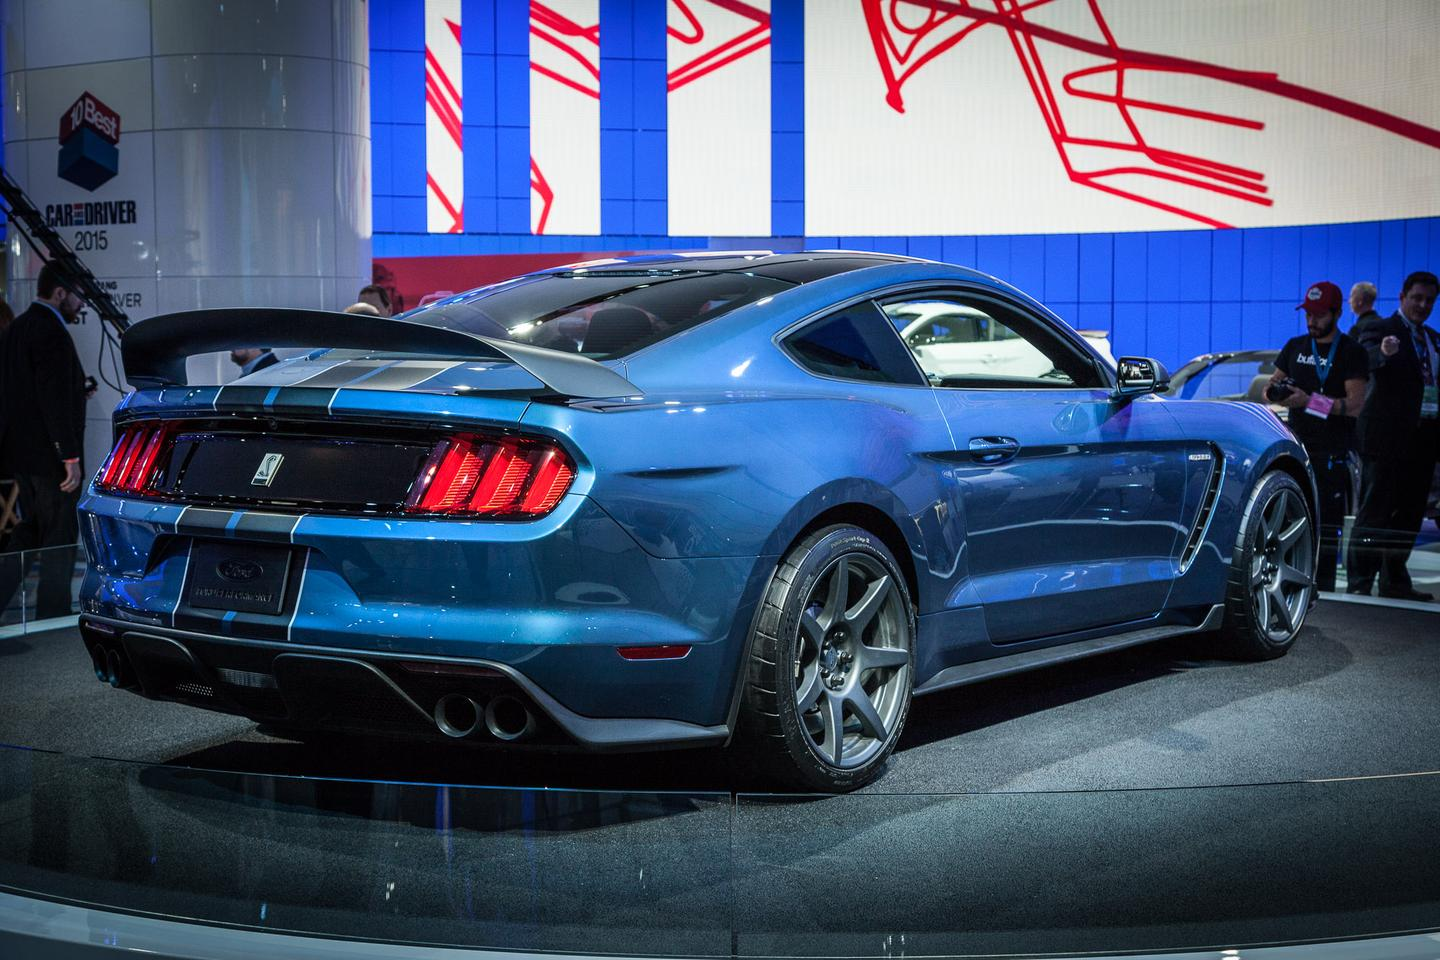 Ford's Shelby Mustang GT350R is much lighter and stripped down for 2015. Everything that doesn't make it faster around a racetrack has been thrown out, from aircon to the reversing camera (Photo: Gizmag/Loz Blain)